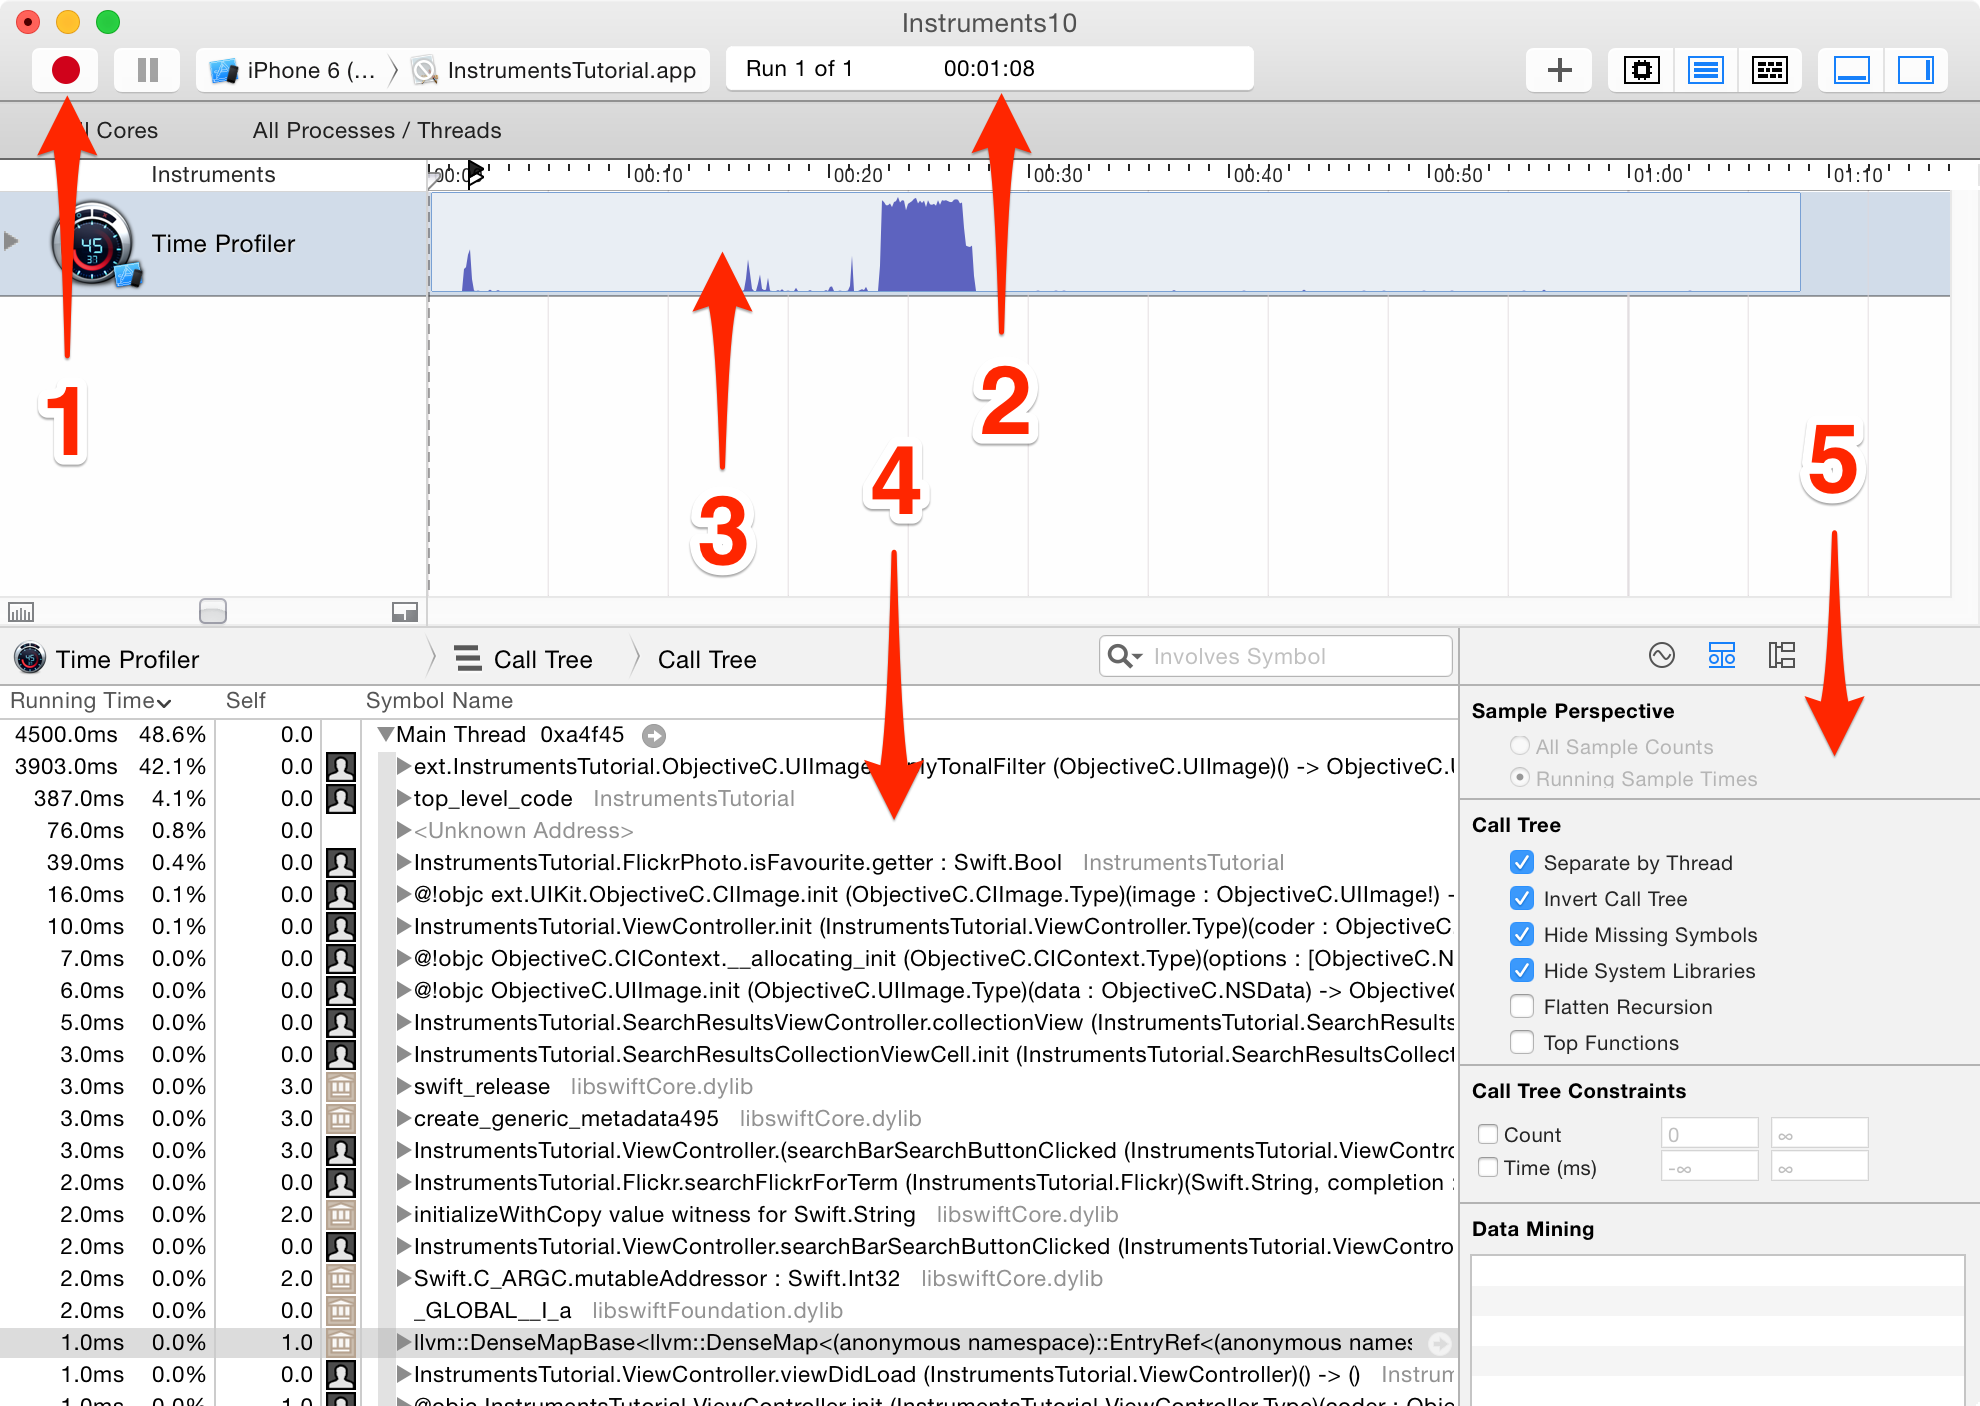 Profiling with Instruments / Time Profiler / Essential iOS